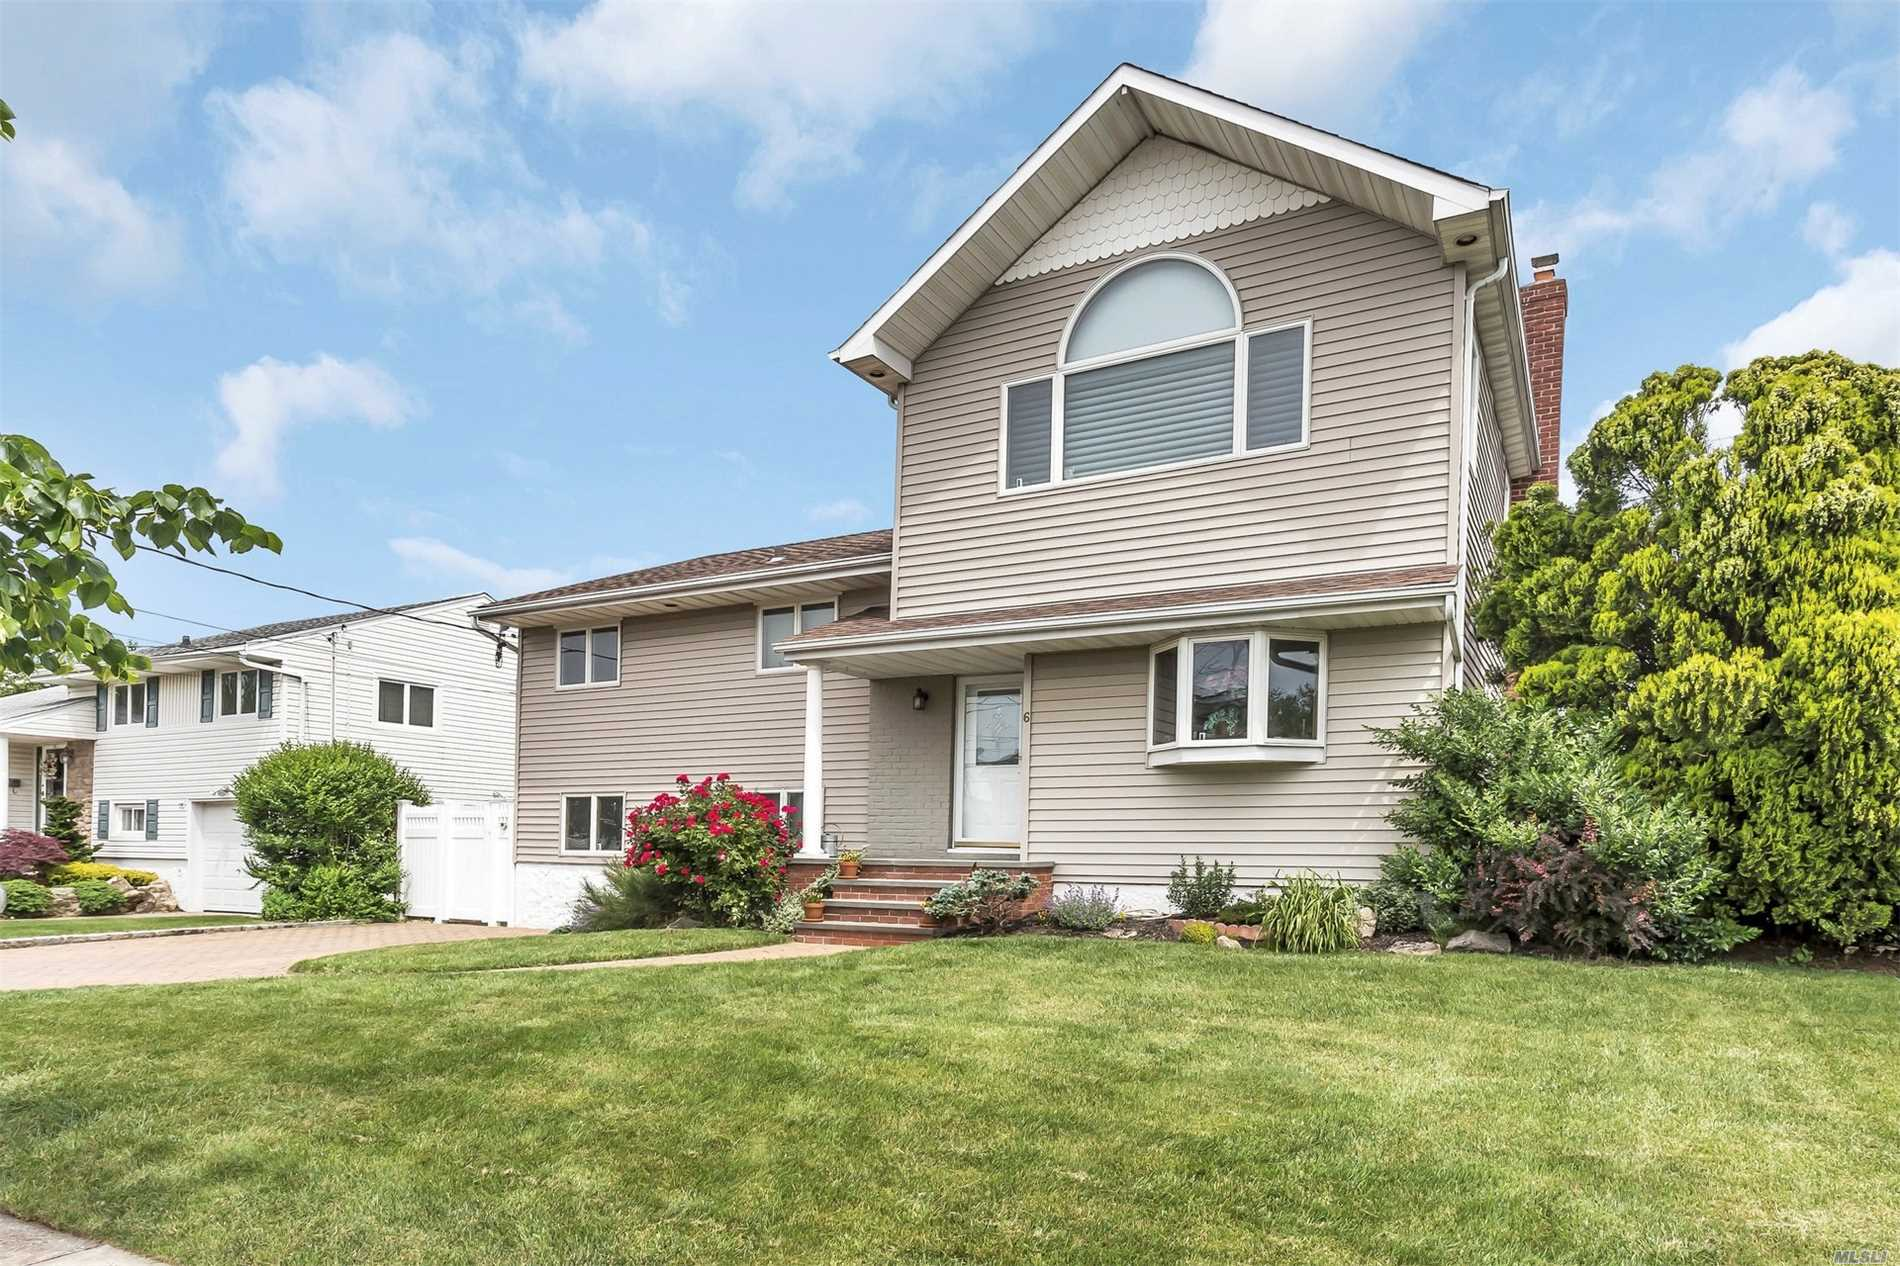 Photo of home for sale at 6 Jomarr Pl, Massapequa NY